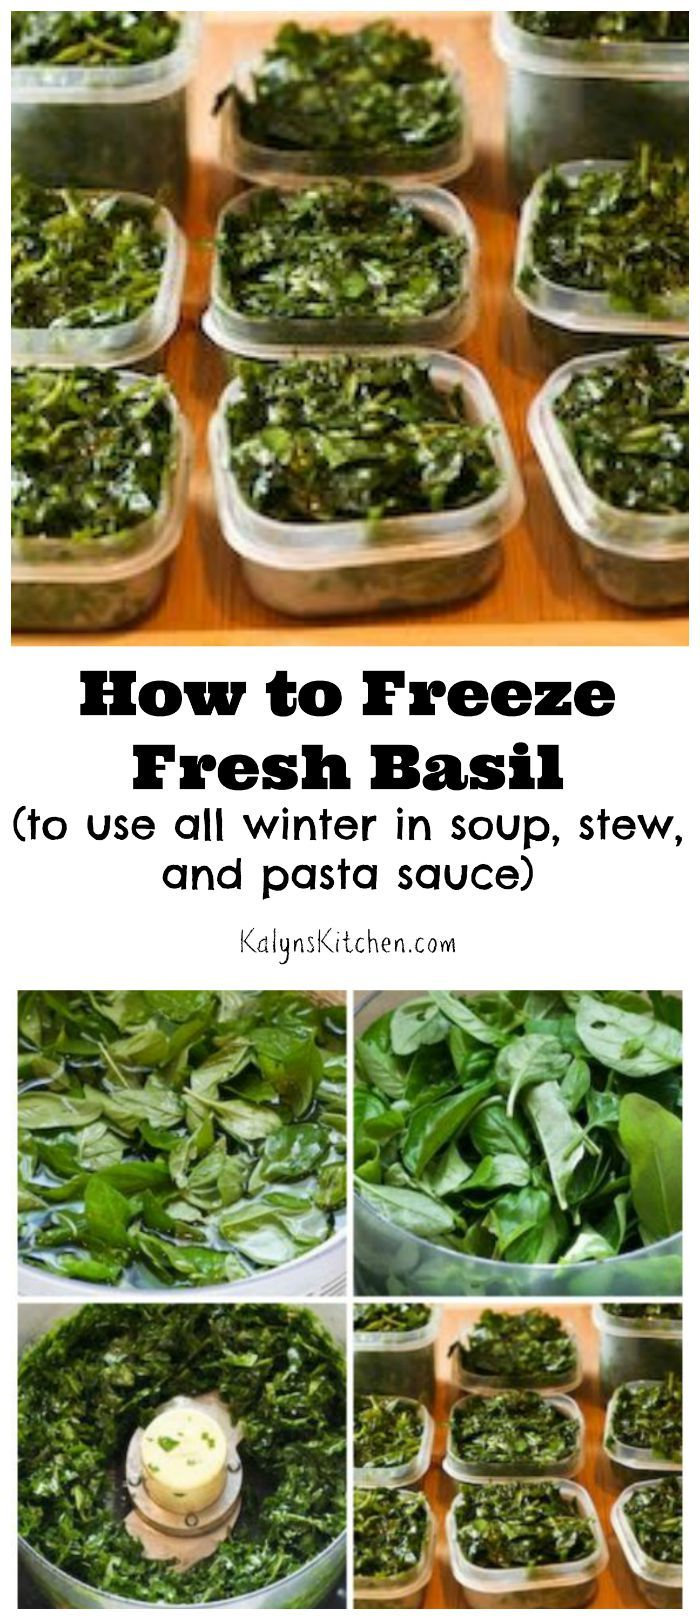 Here are instructions for How to Freeze Fresh Basil, a method I've used for more than 20 years. The frozen basil is great all winter in soup, stew, and pasta sauce, and this post has links to some recipes ideas to use your frozen basil. [found on KalynsKitchen.com]